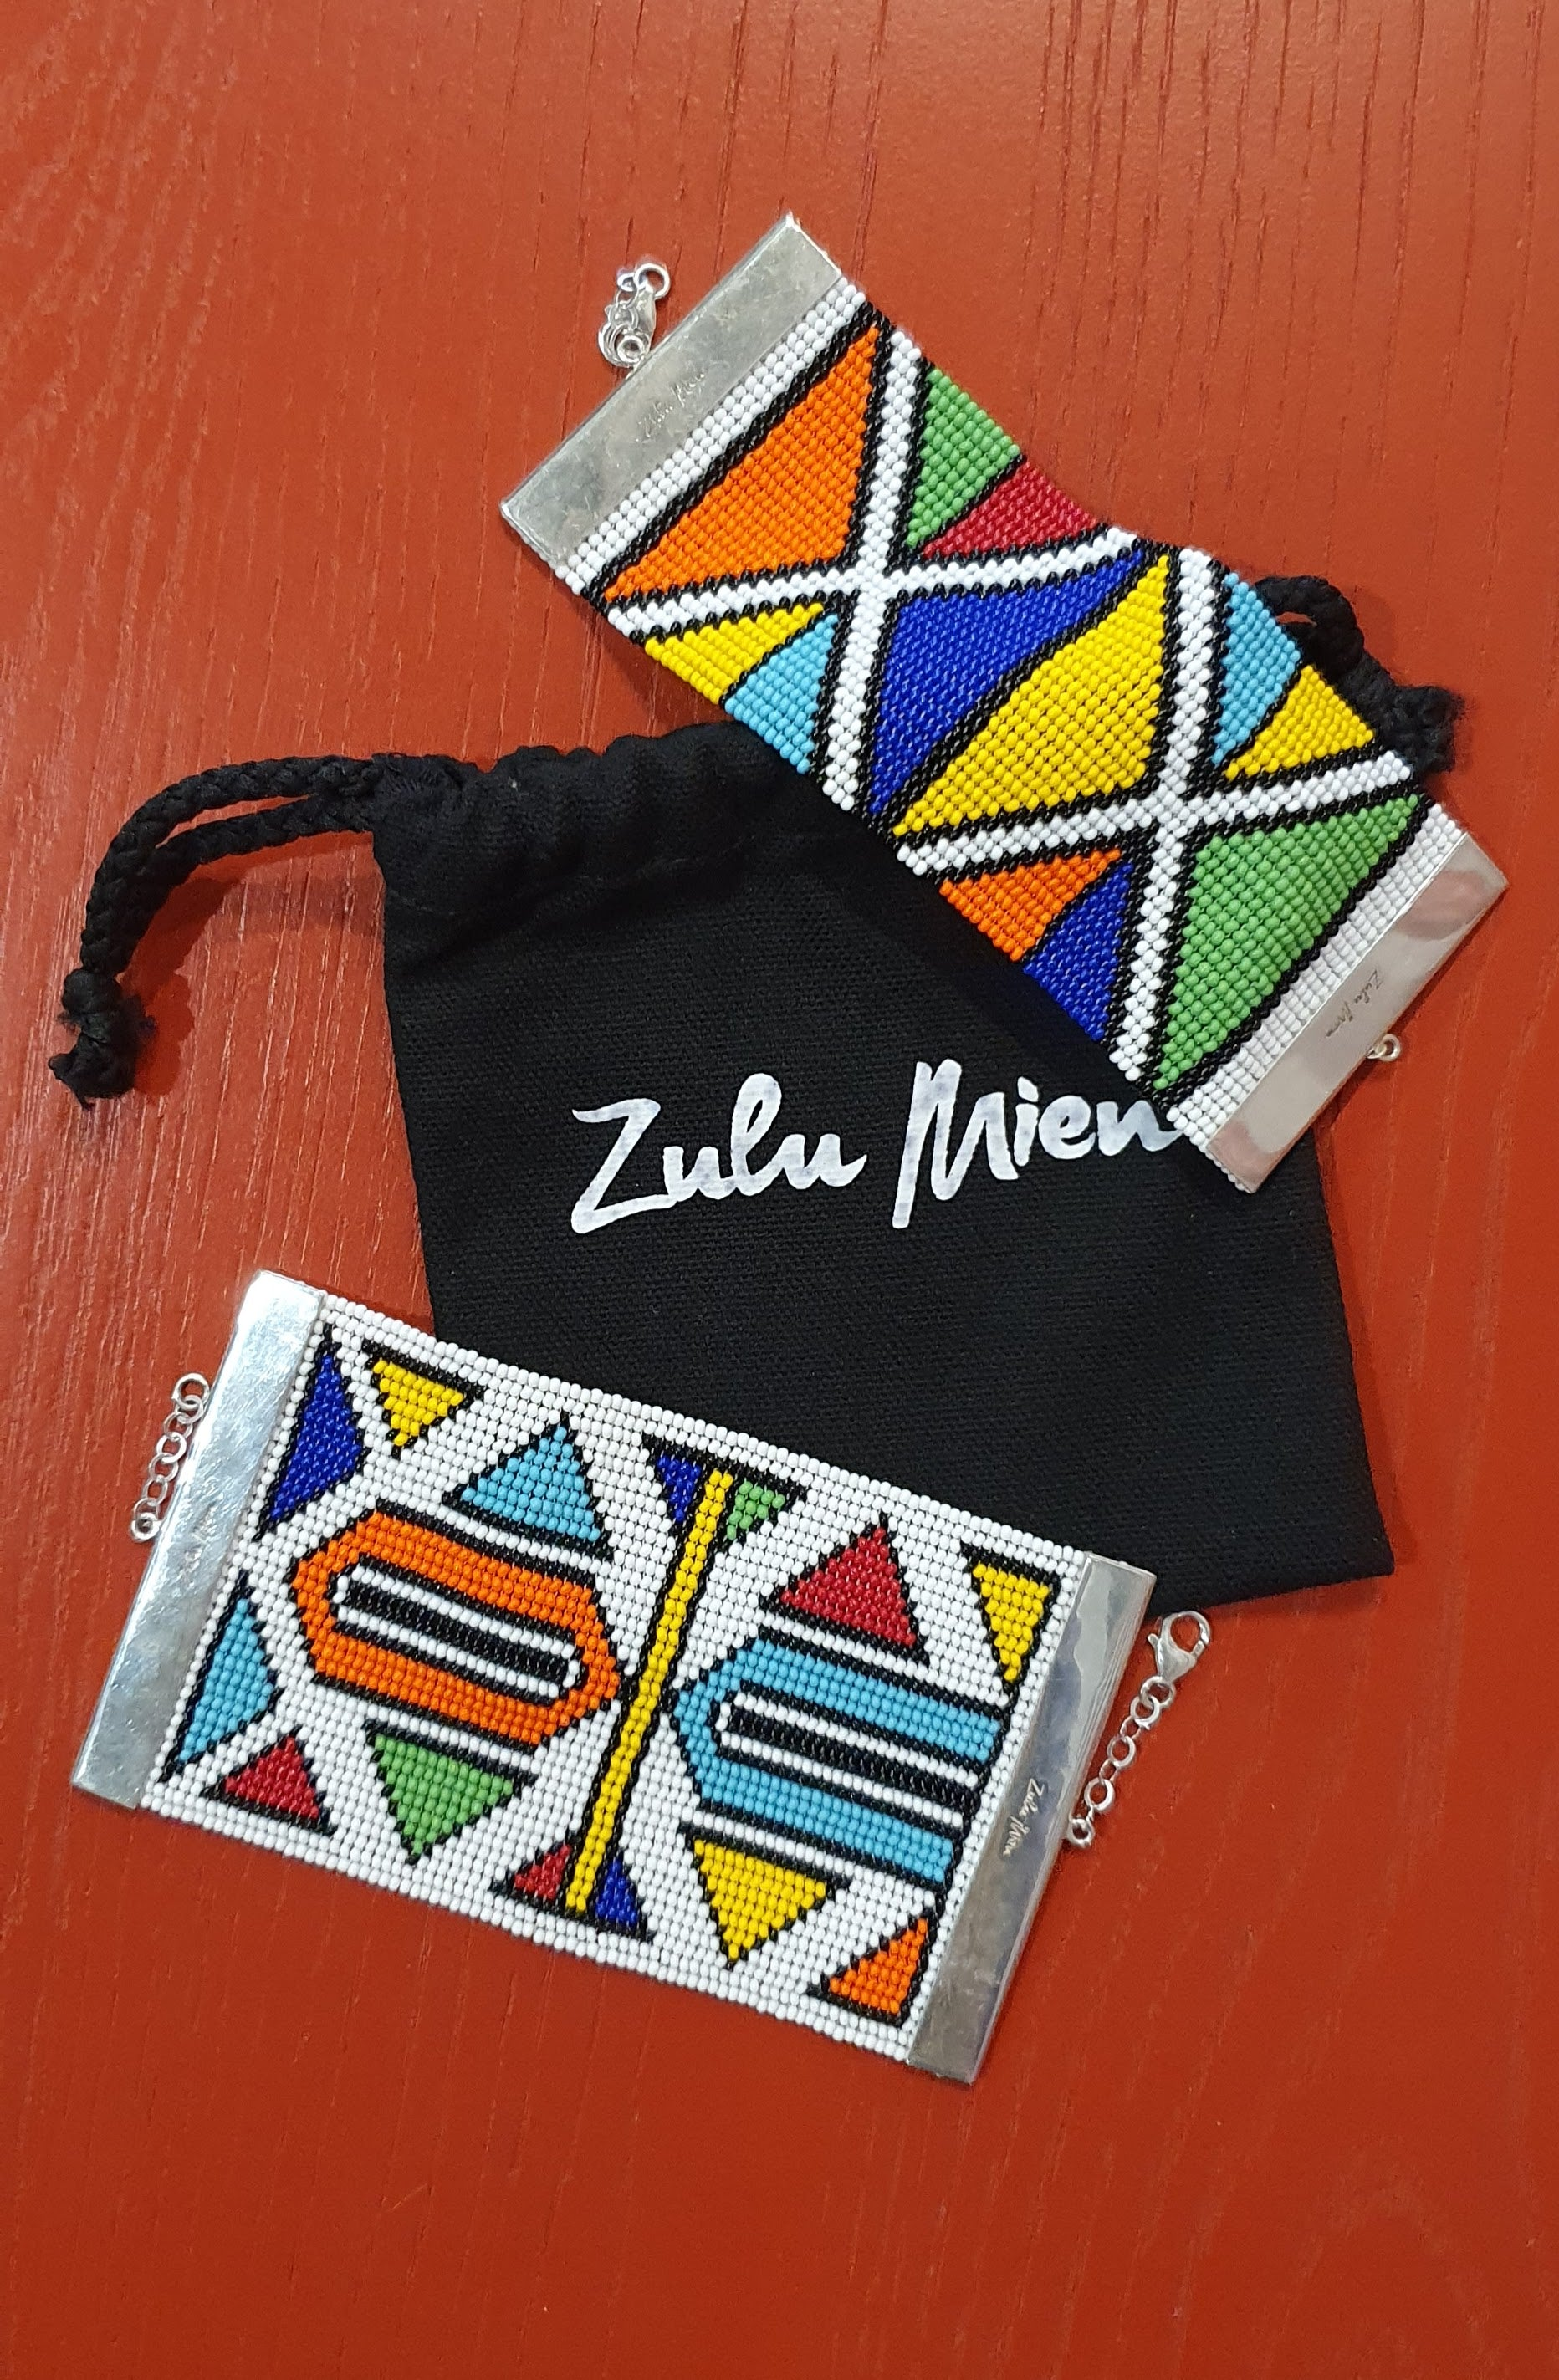 ZULU MIEN AFRICAN COLOUR CUFFS and CHOKERS